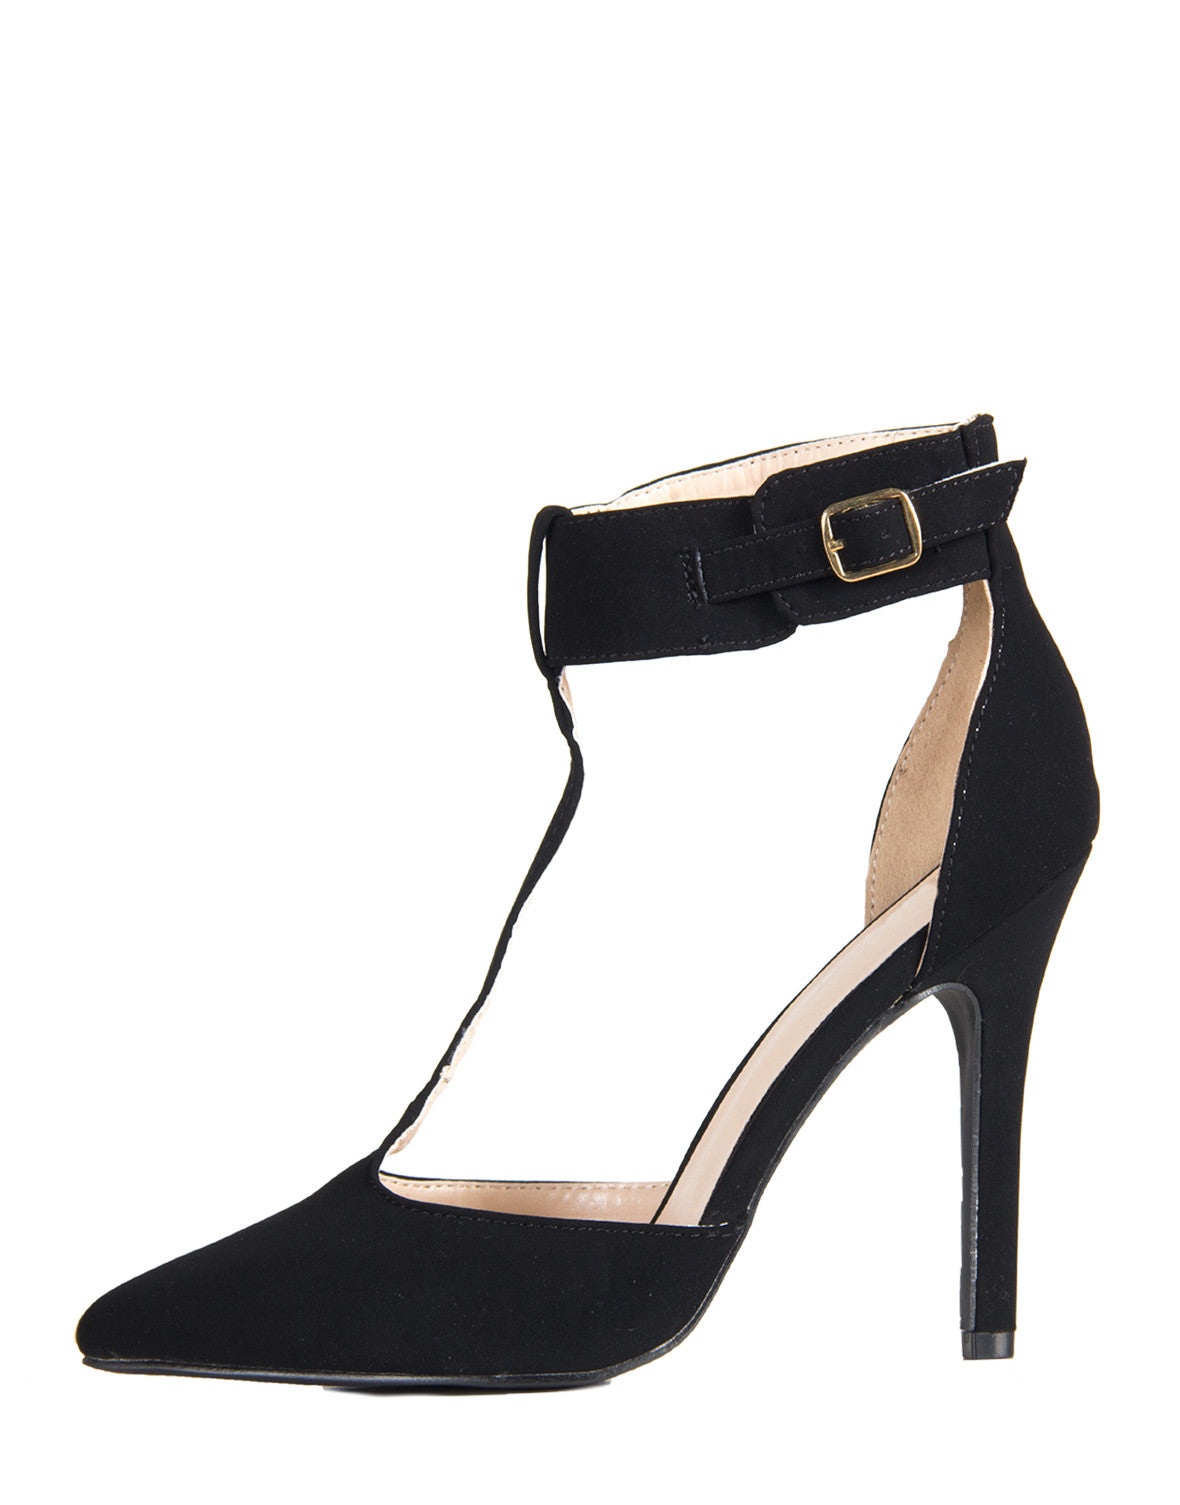 Simple T-Strap Pumps